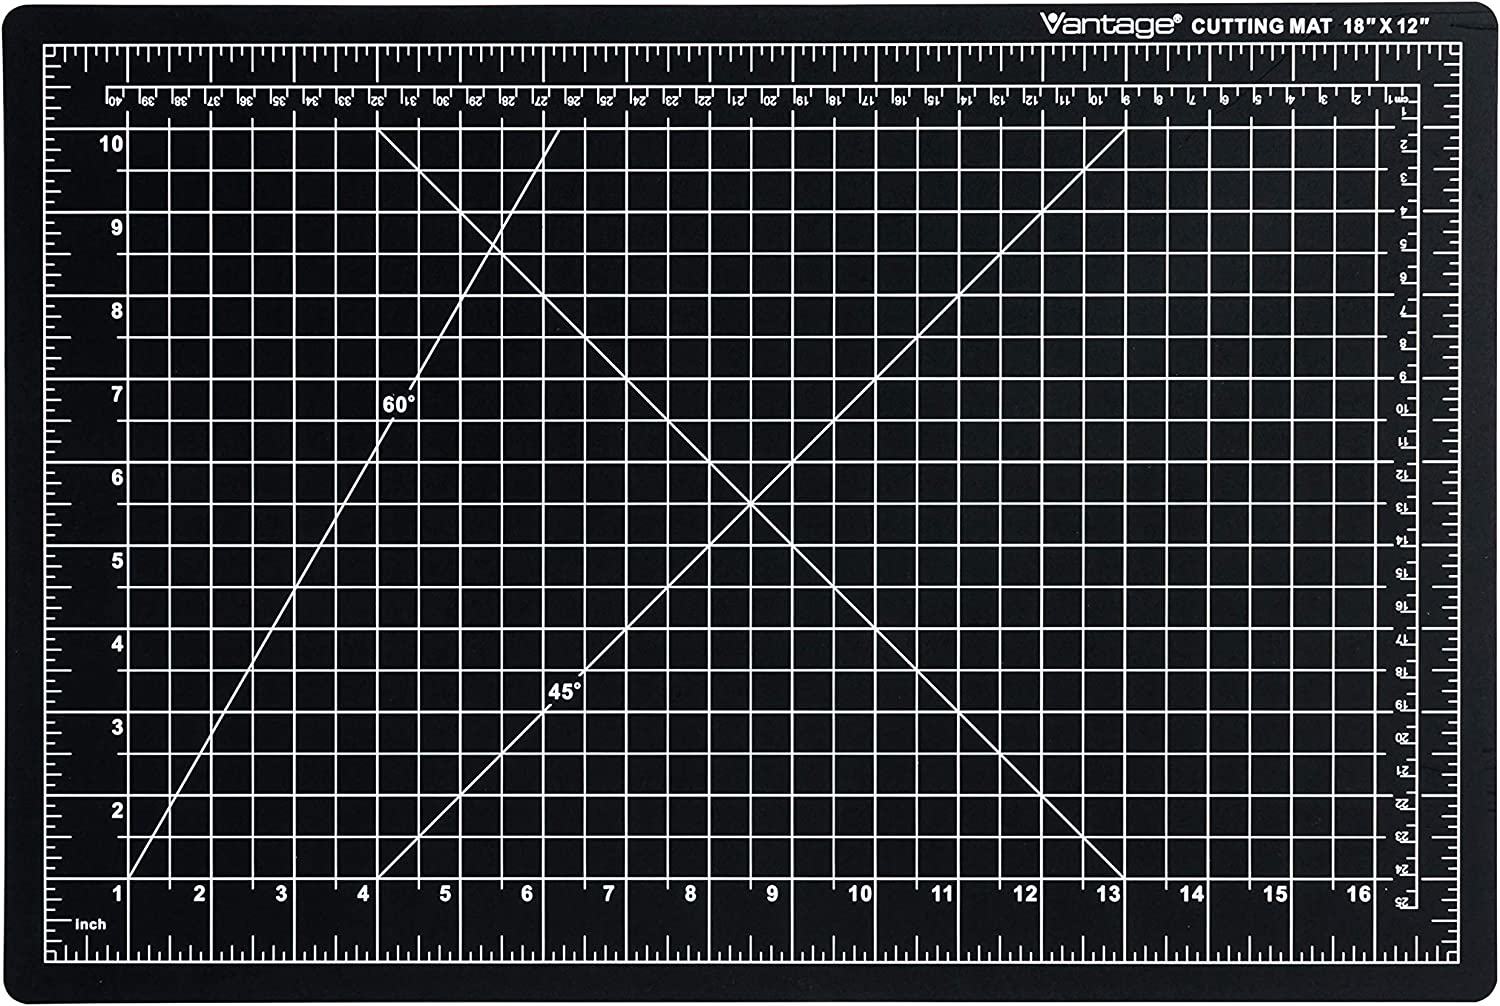 Black 5 Layers for Max Healing 1//2 Grid 9x12 Perfect for Crafts /& Sewing Dahle Vantage 10670 Self-Healing Cutting Mat